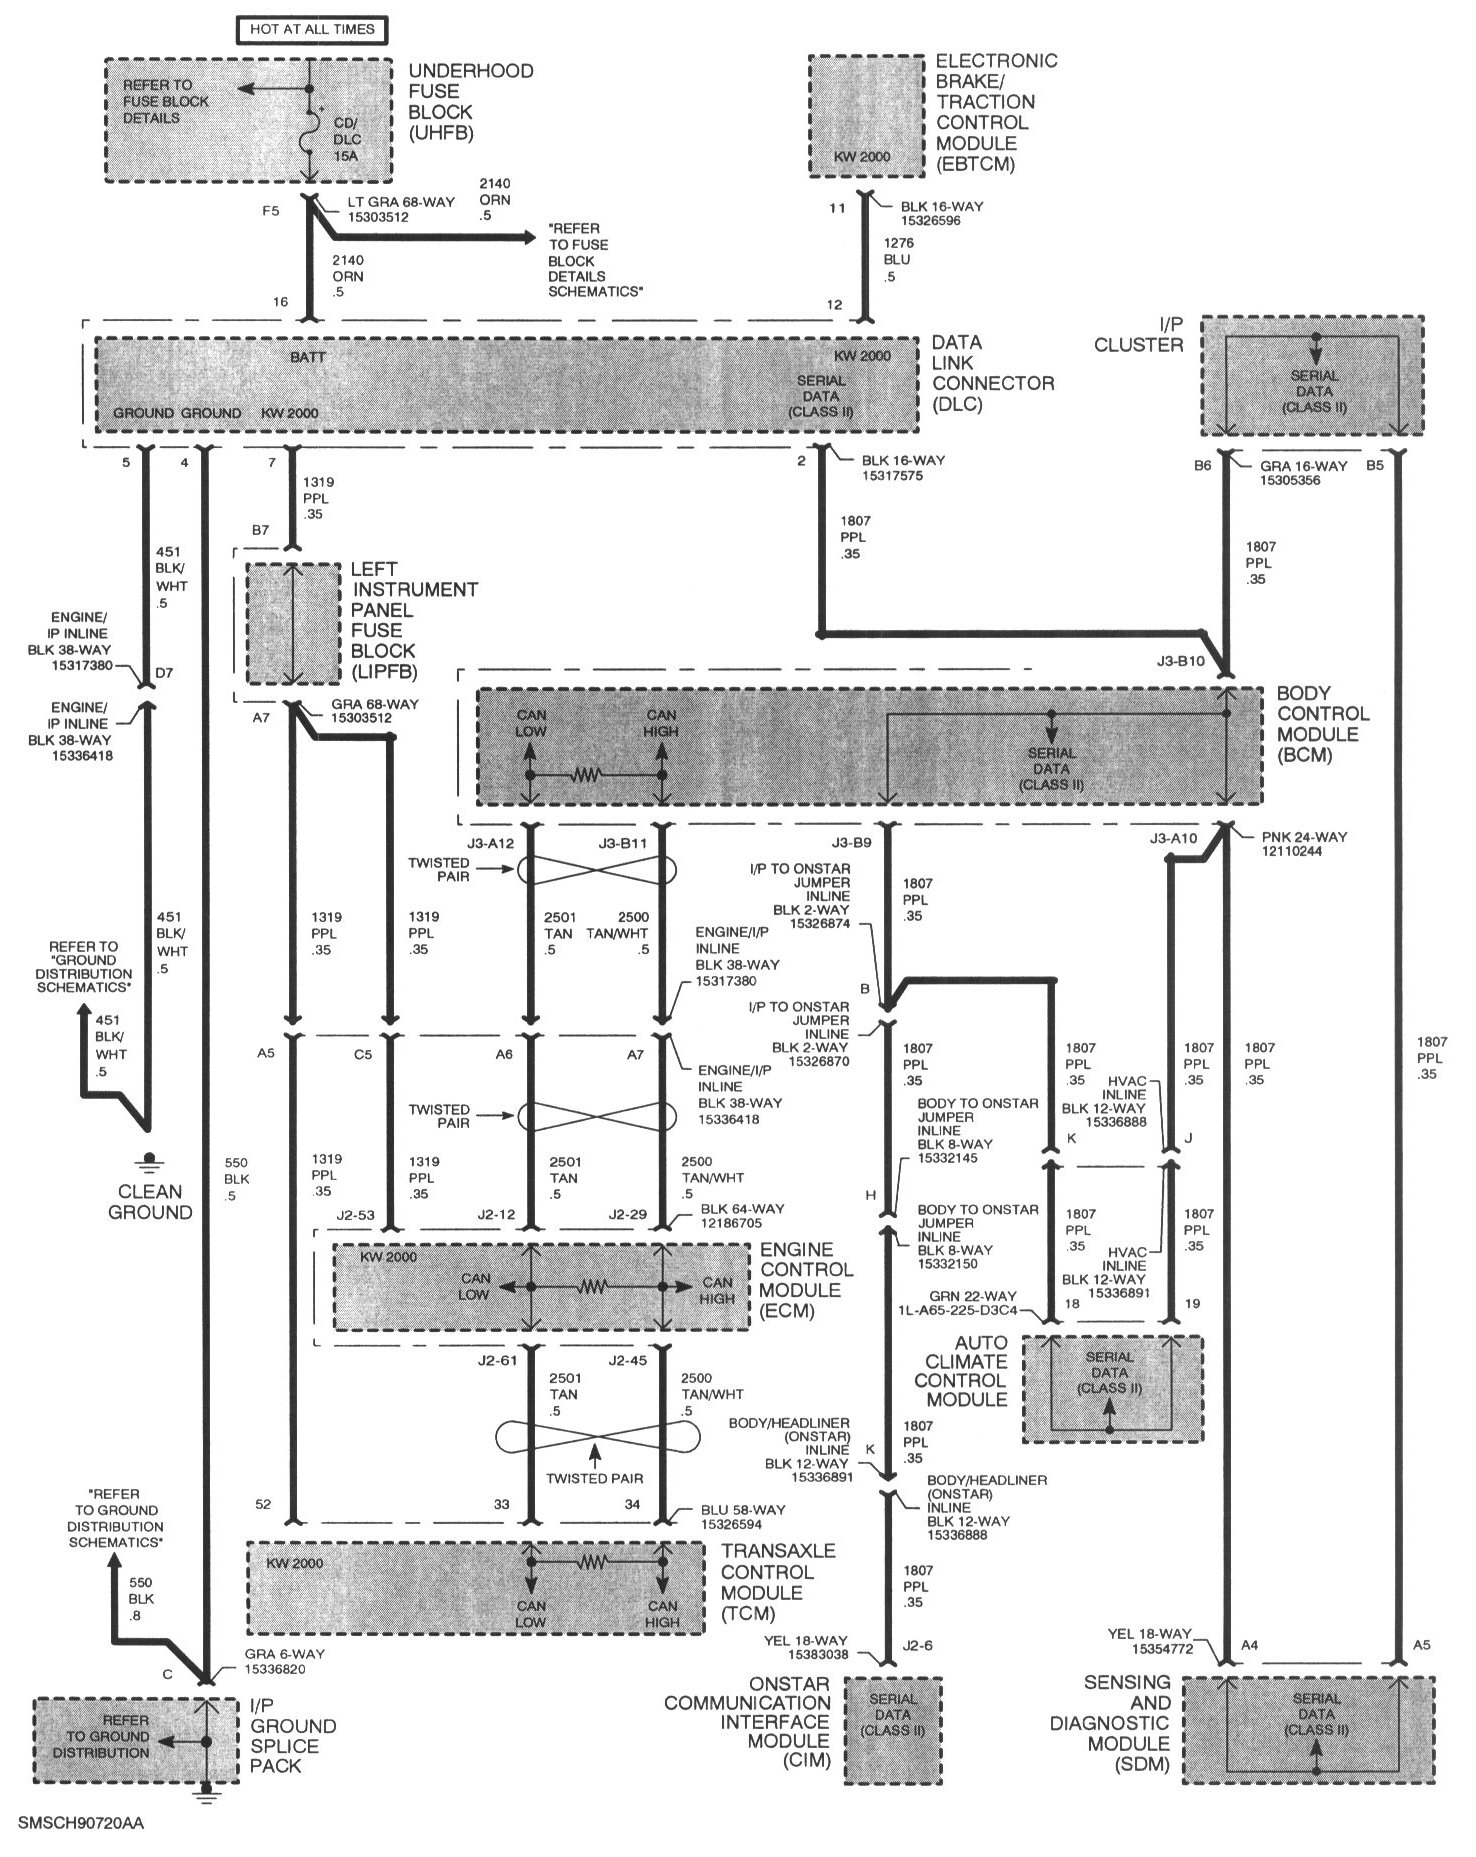 2002 saturn l200 fuse box diagram GECmQfK wiring diagram for 2001 saturn the wiring diagram readingrat net mitsubishi l300 wiring system diagram at edmiracle.co